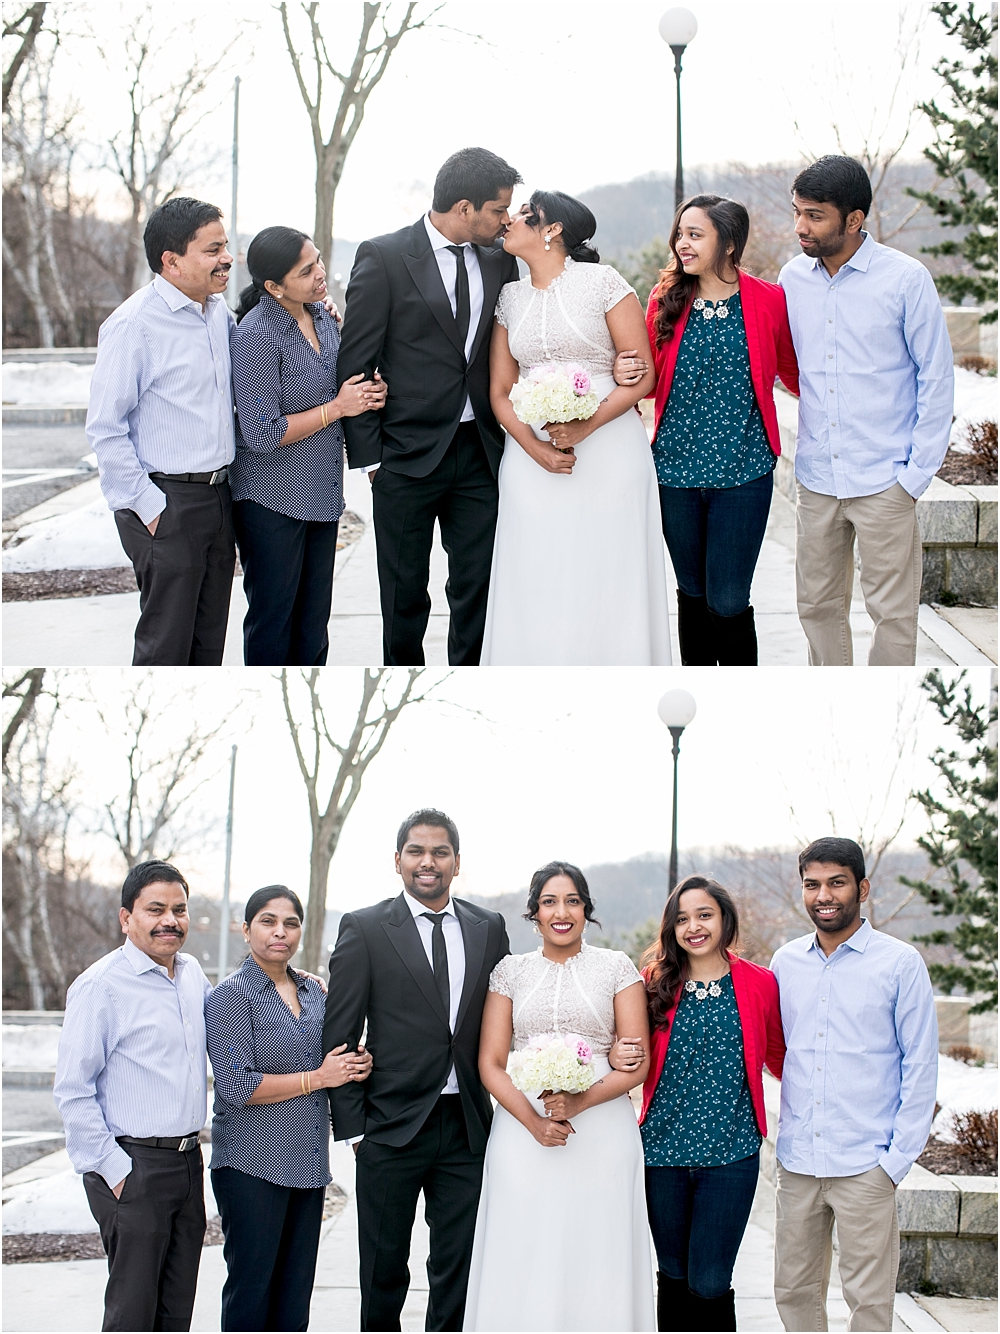 neelima praveen maryland courthouse wedding living radiant photography_0013.jpg